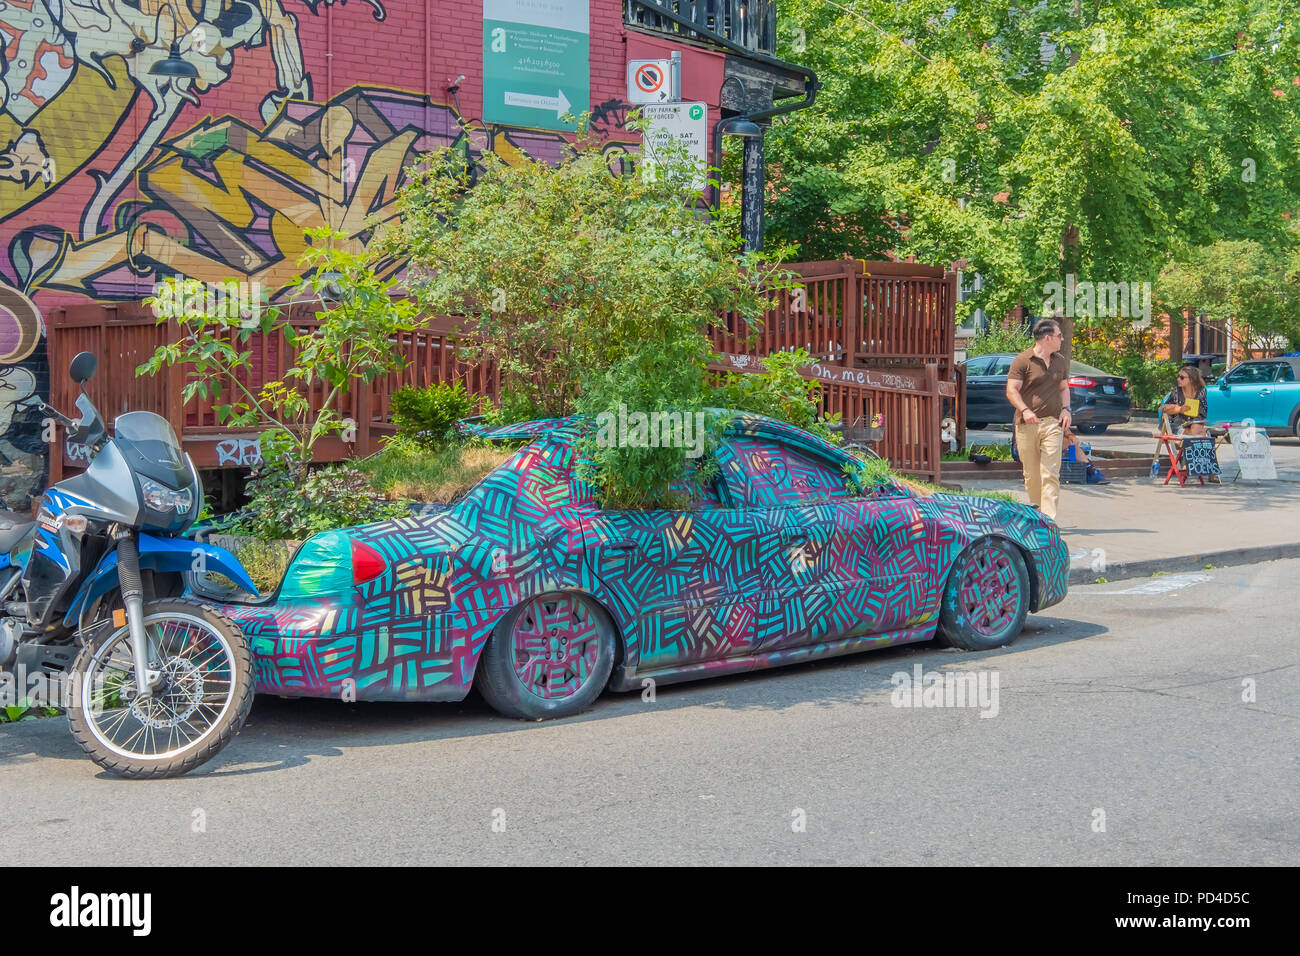 Abandoned car repurposed to become living art with trees and grass planted on it in the Kensington District of Toronto. - Stock Image